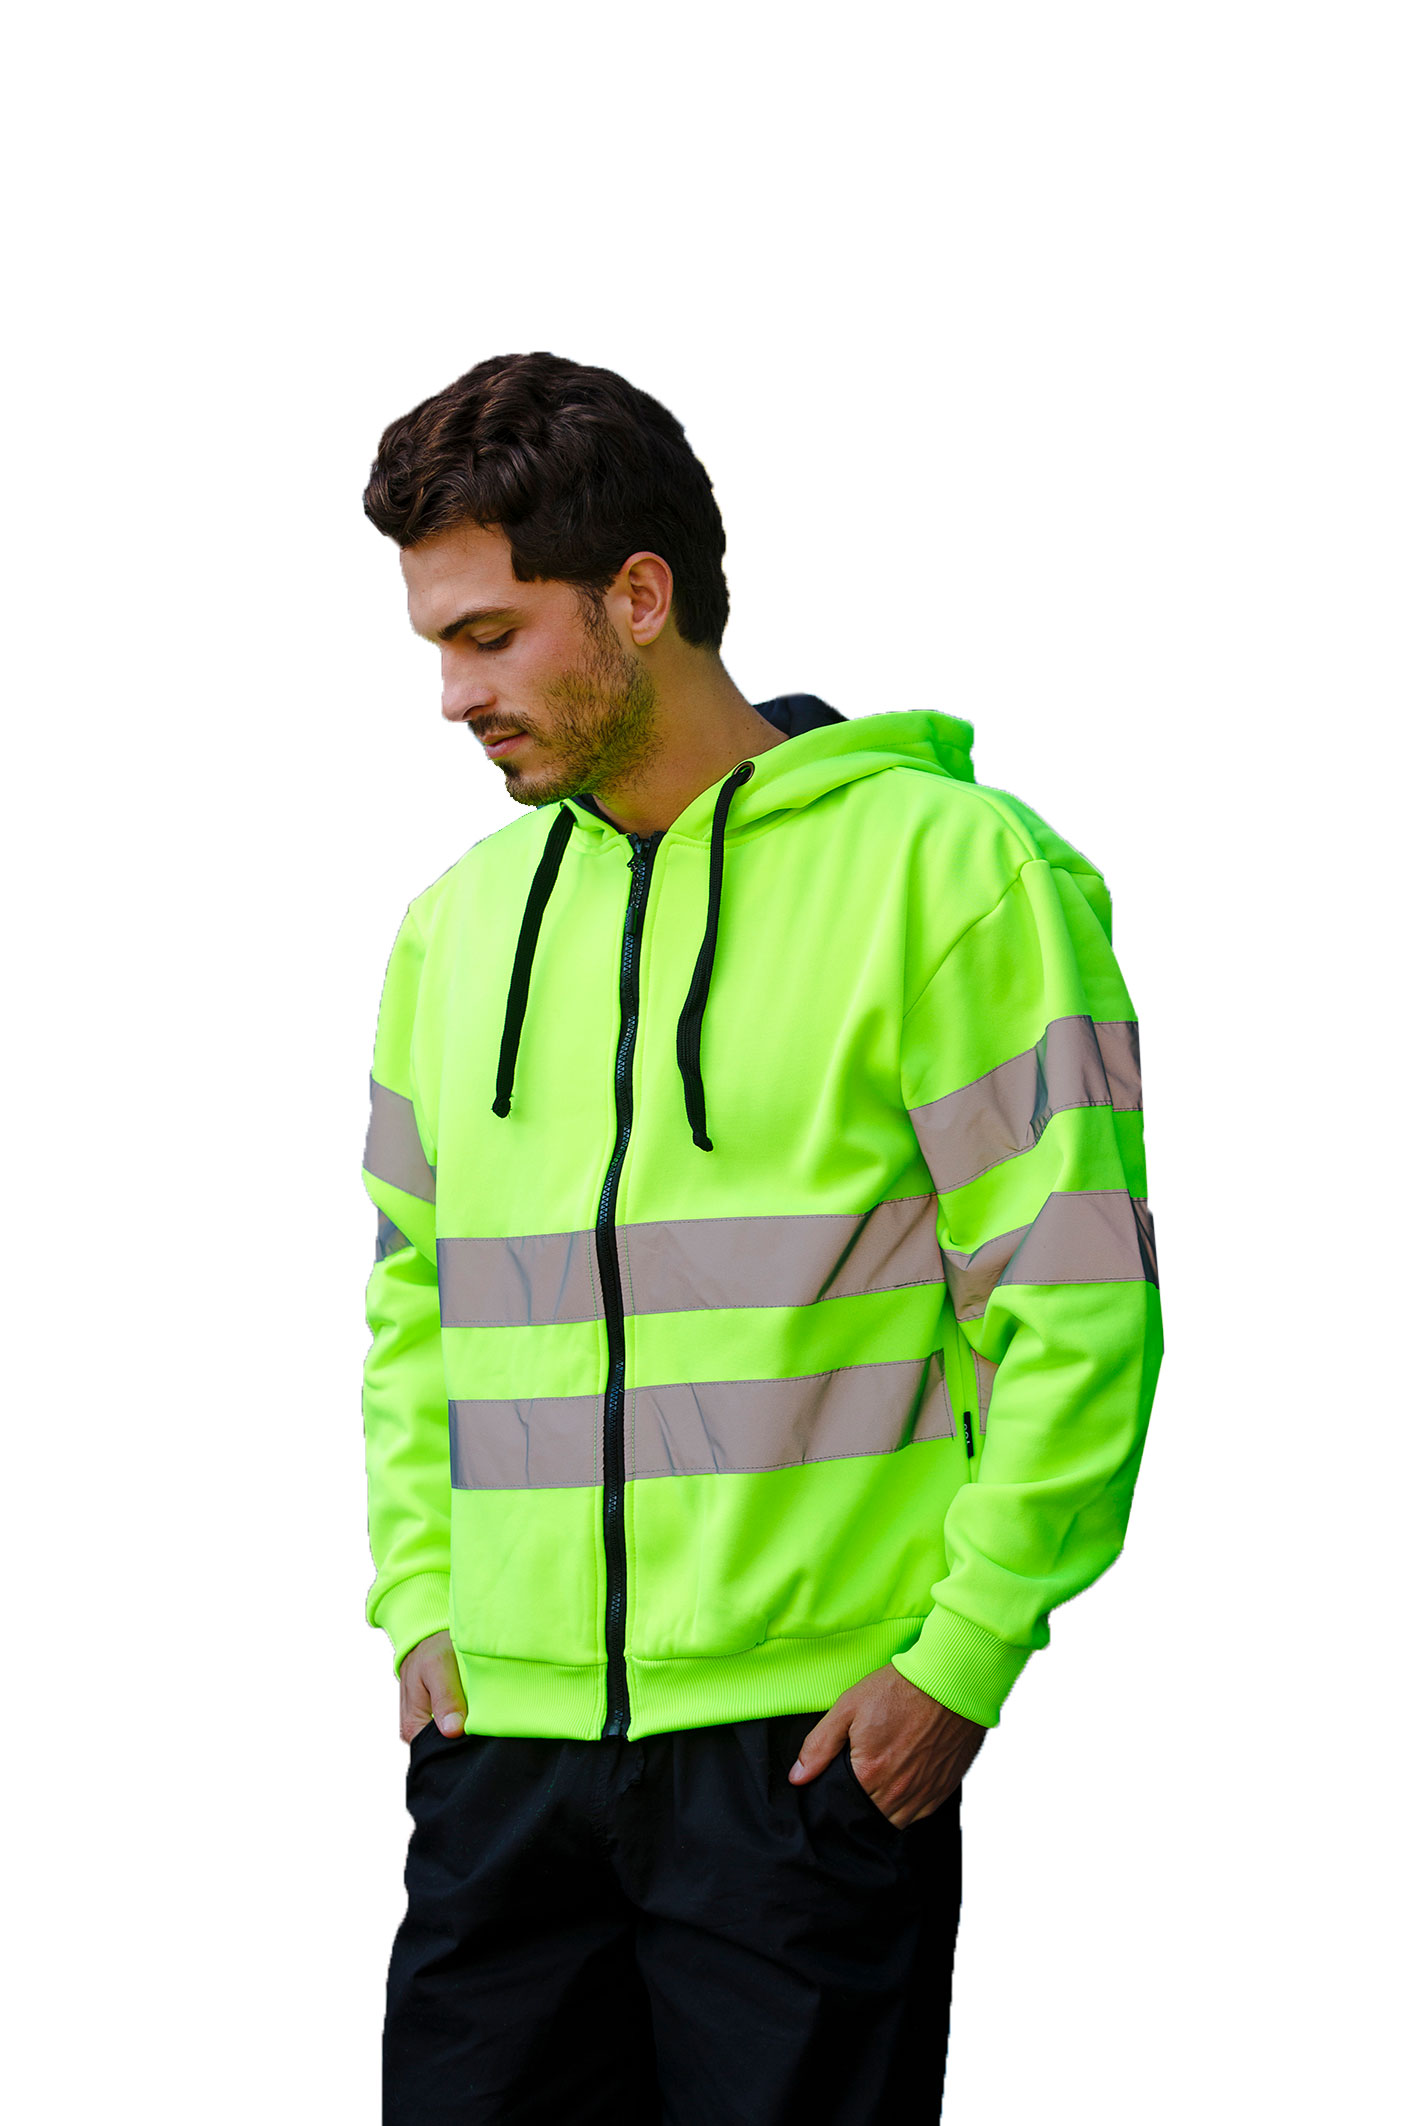 Sweaters EN 471 - visibility